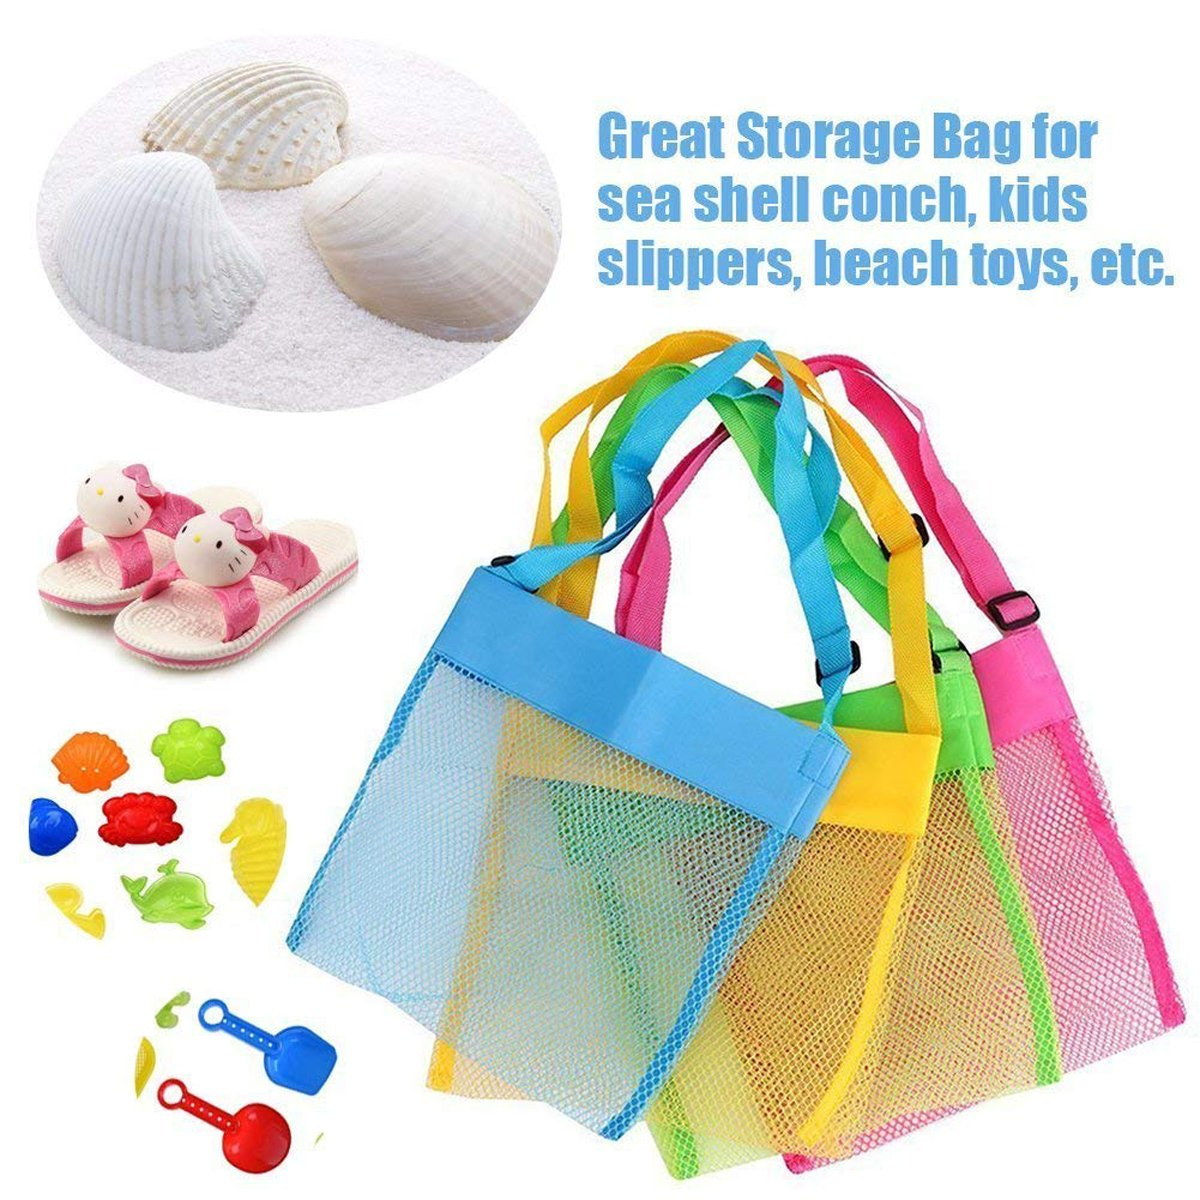 """Bylove 5 Pieces Colorful Mesh Beach Bags Breathable Sea Shell Bags Toy Storage Bags with Adjustable Carrying Straps (5 pieces, 9.8"""" x 9.4"""") by Bylove (Image #2)"""